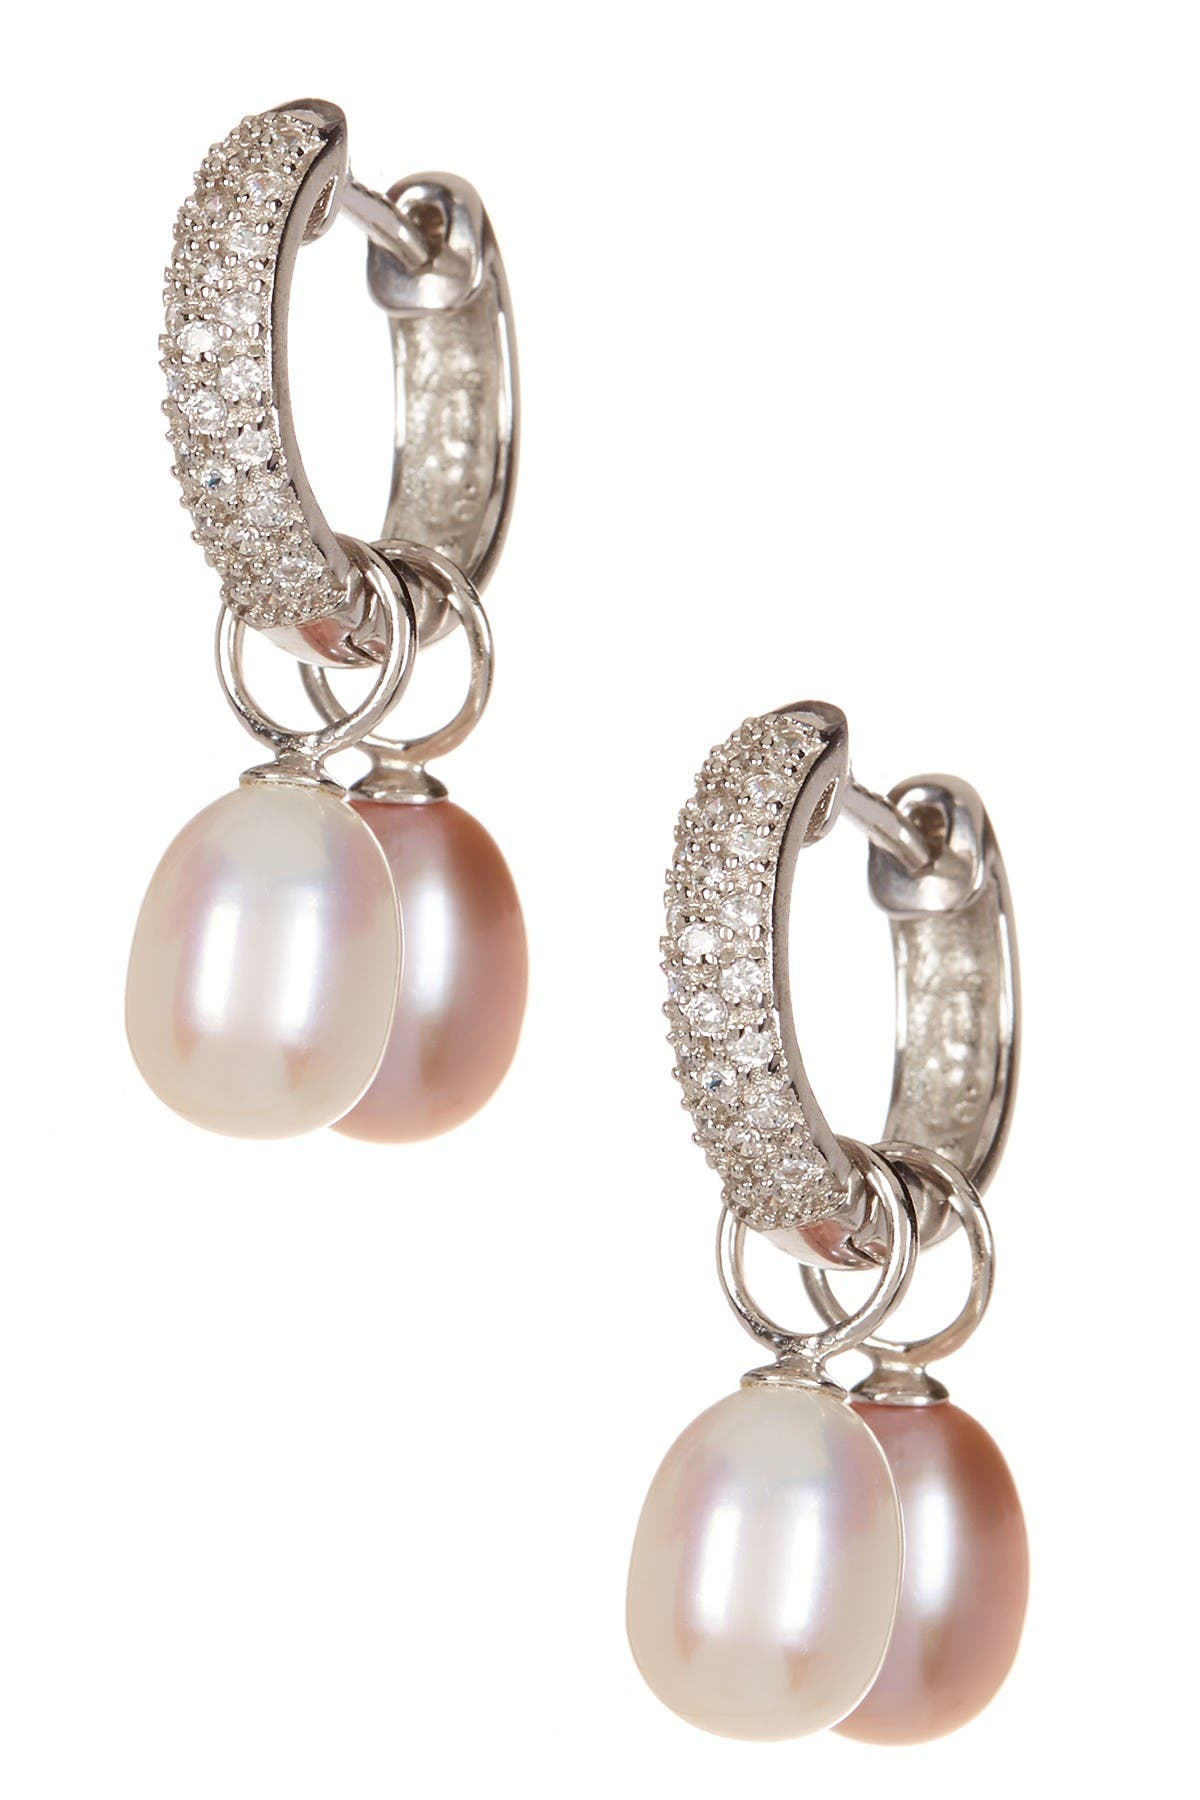 Image of Splendid Pearls 7.5-8mm White & Pink Cultured Freshwater Pearl Interchangeable Pave CZ Huggie Earrings